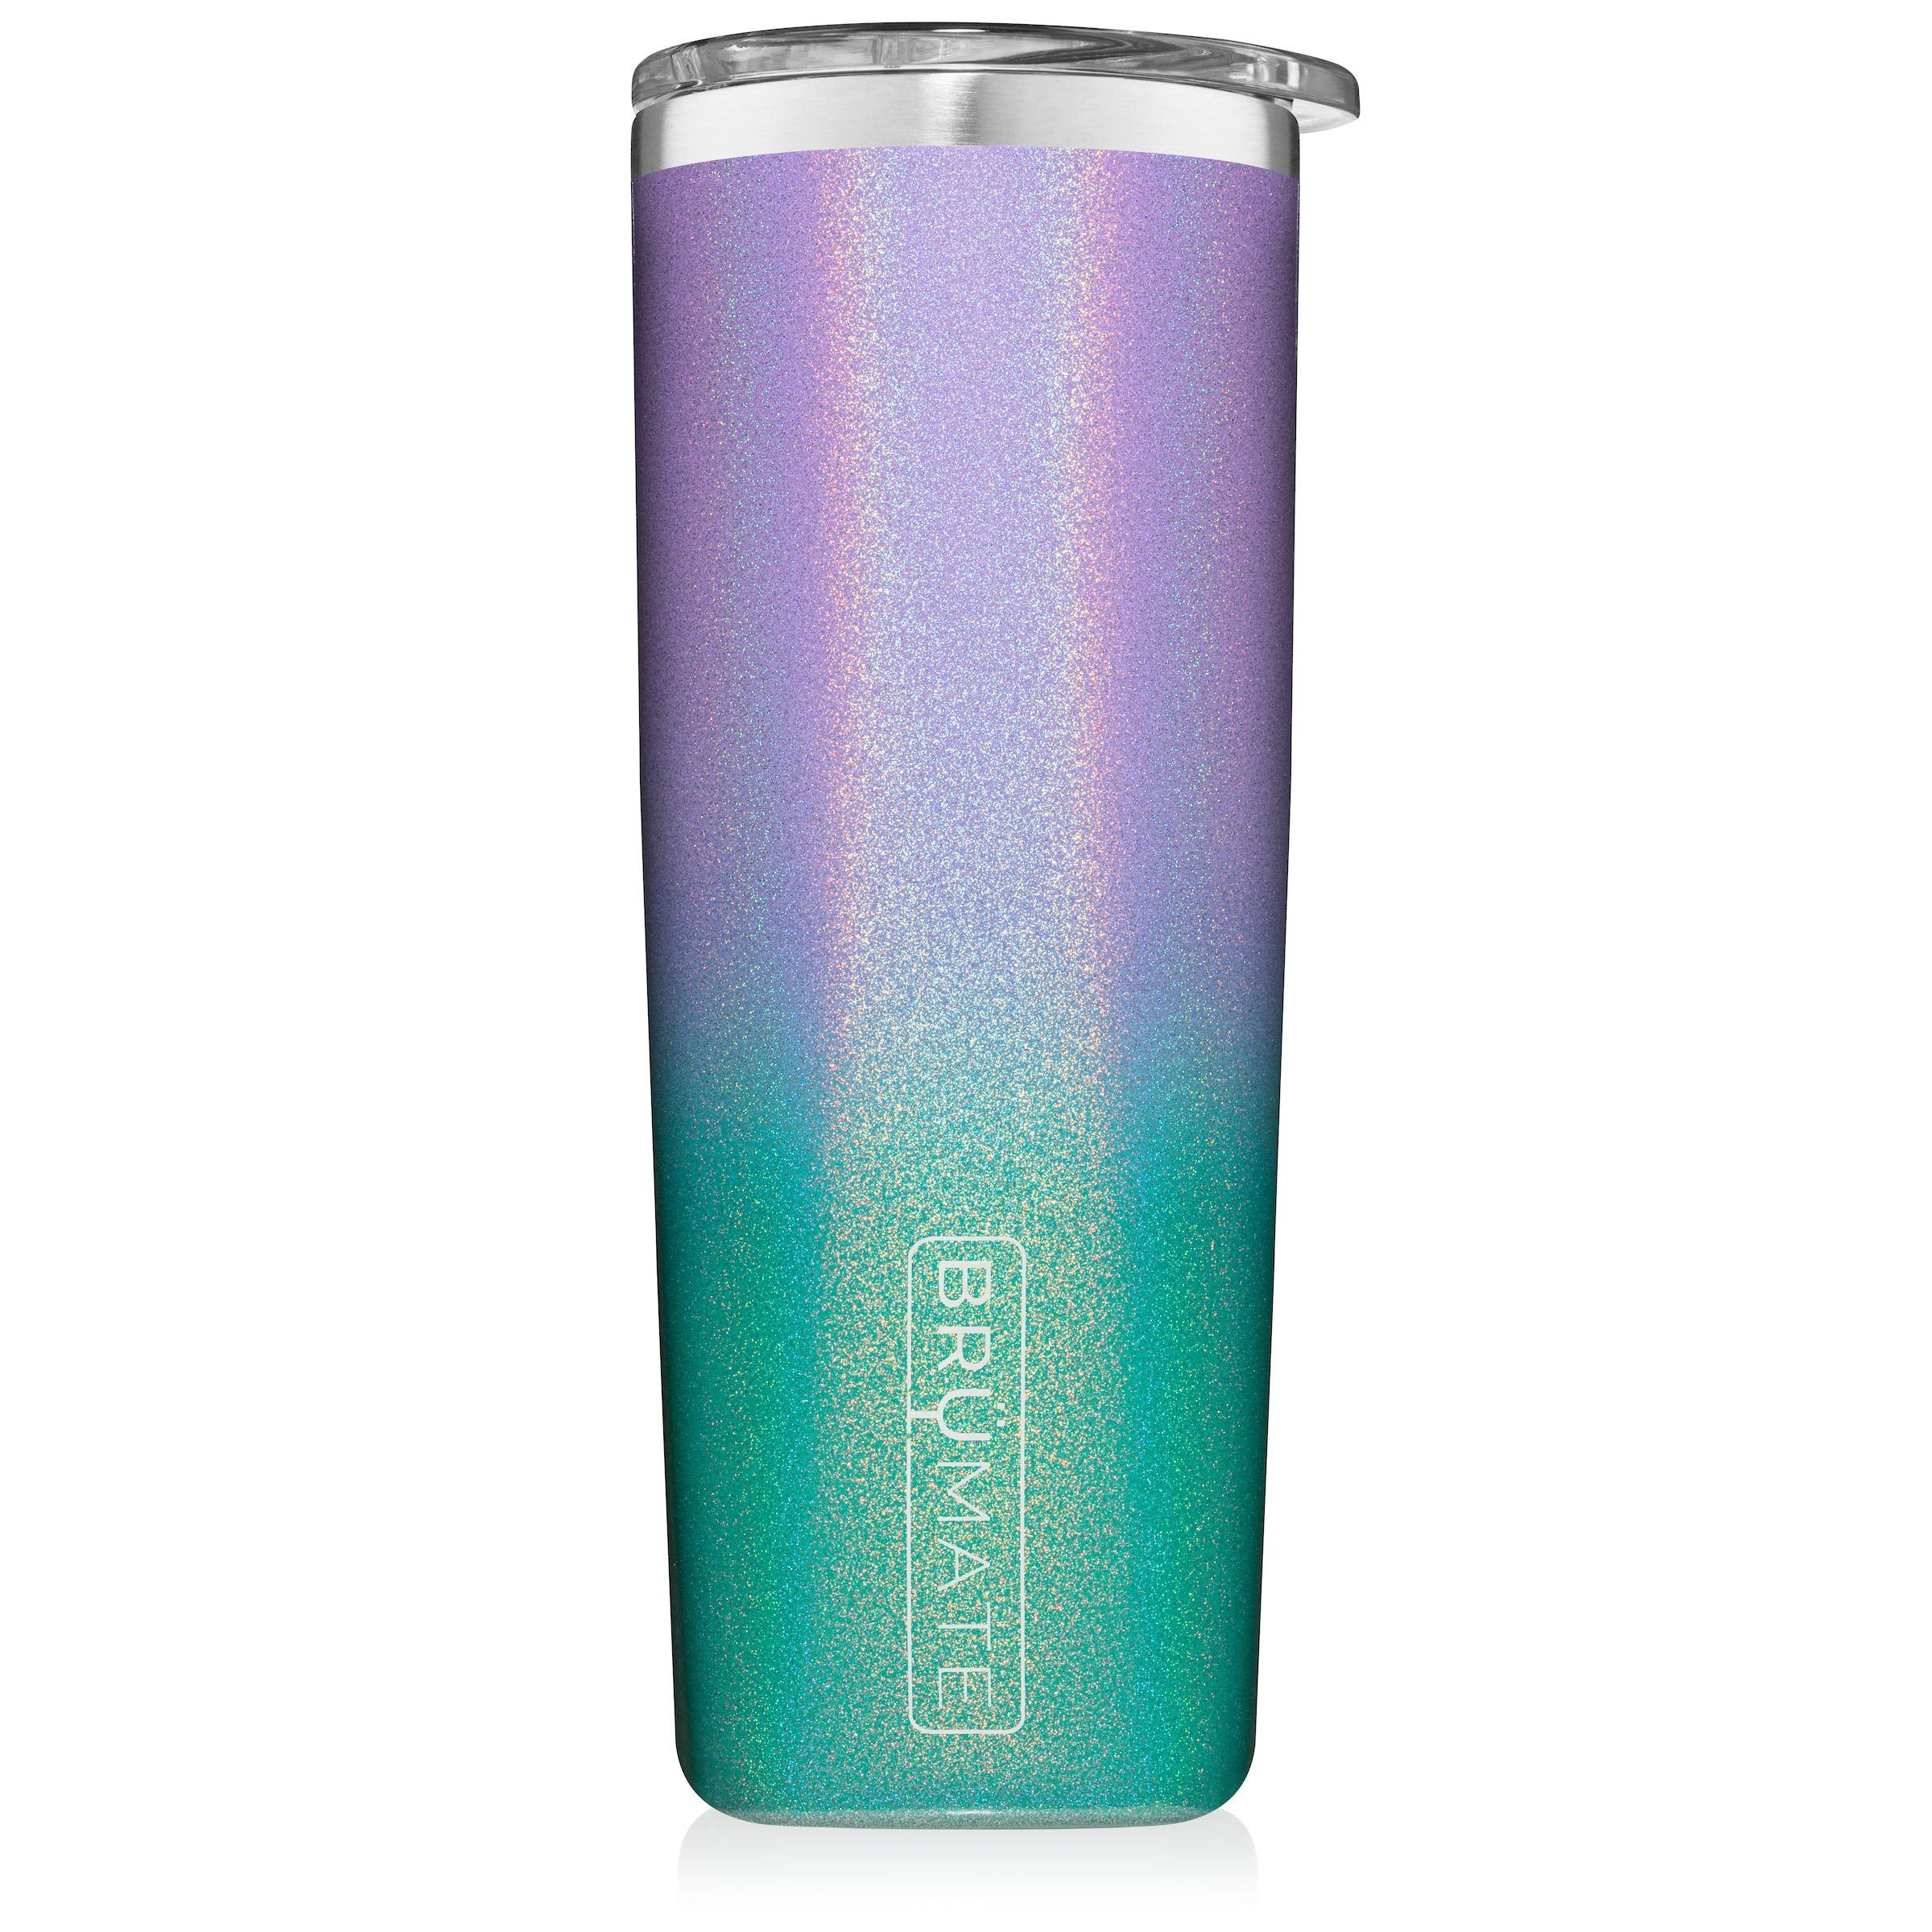 Br/üMate Highball 12oz Insulated Highball Cocktail Tumbler With Splash-proof Lid Made With Triple Insulated Stainless Steel Navy Blue